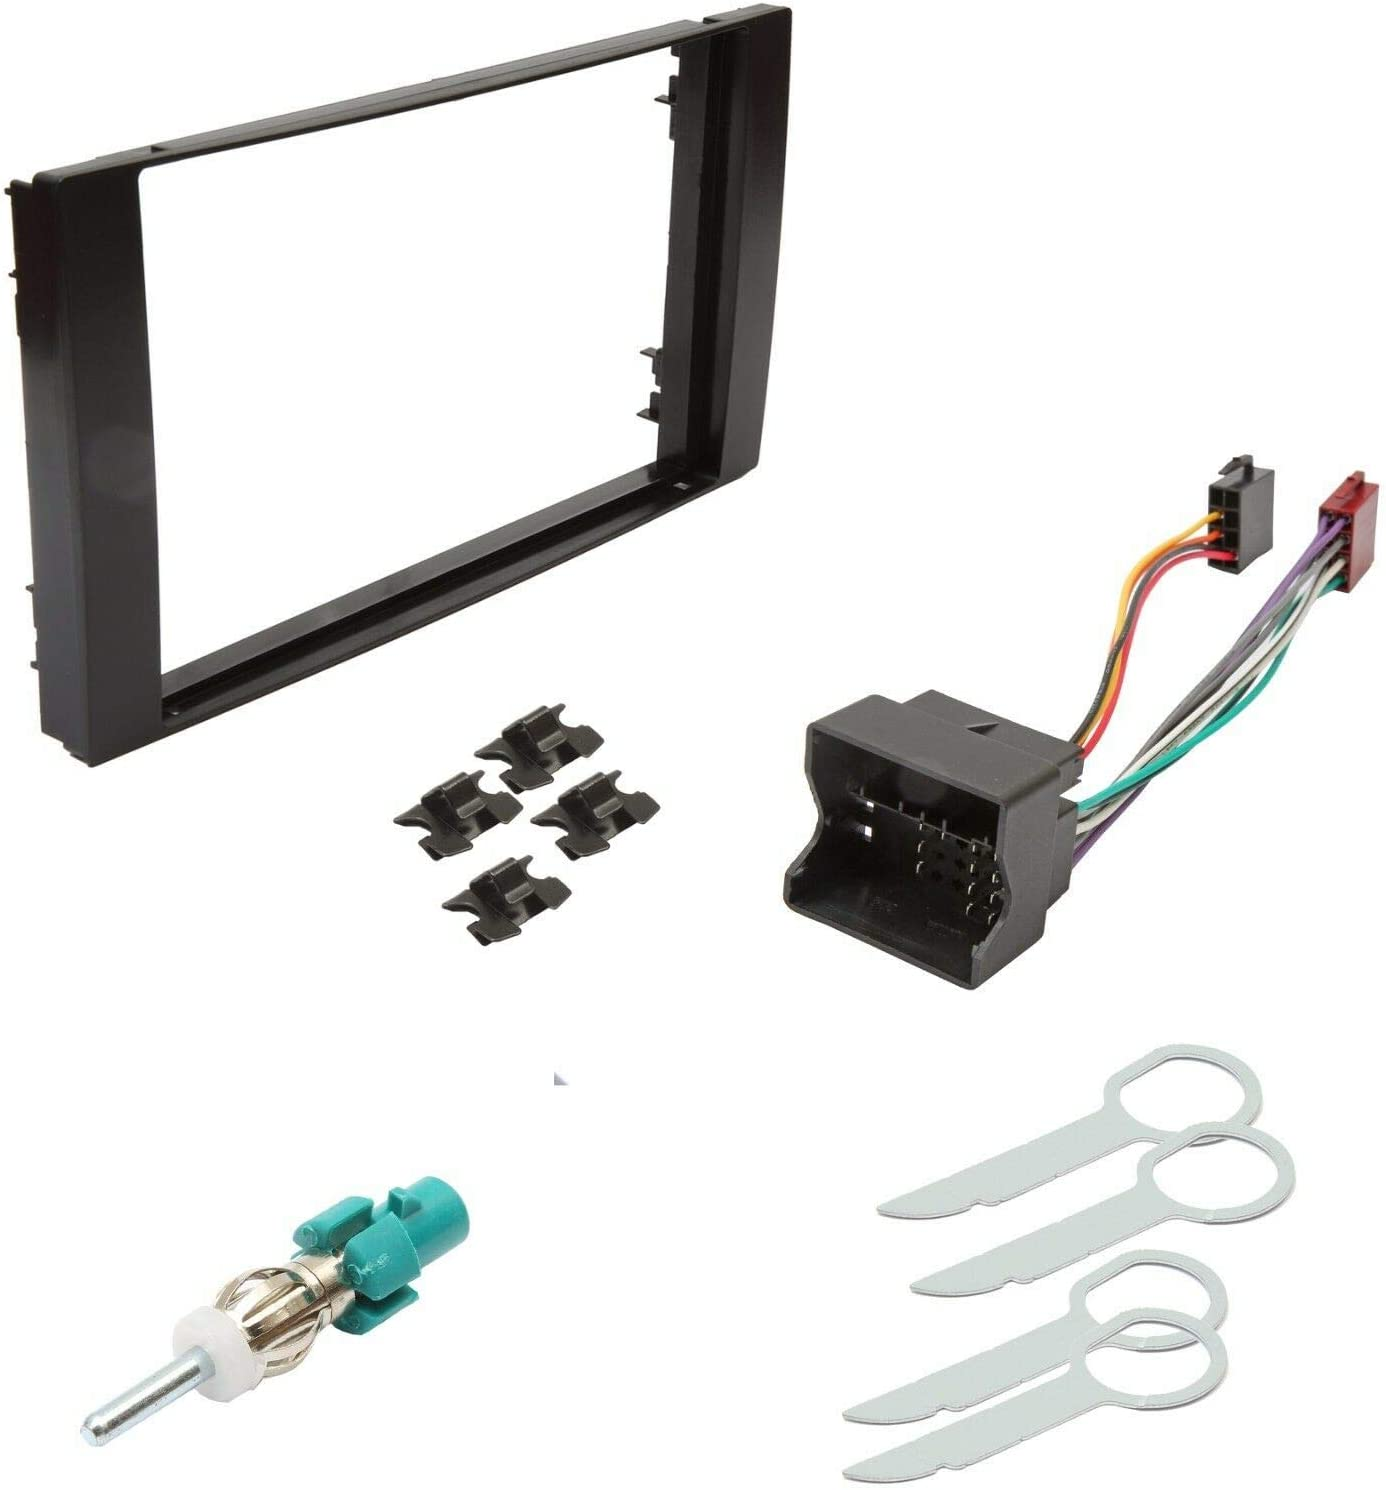 Ford Transit /& S-Max Double Din Fascia Panel Adapter Plate Cage Fitting Kit